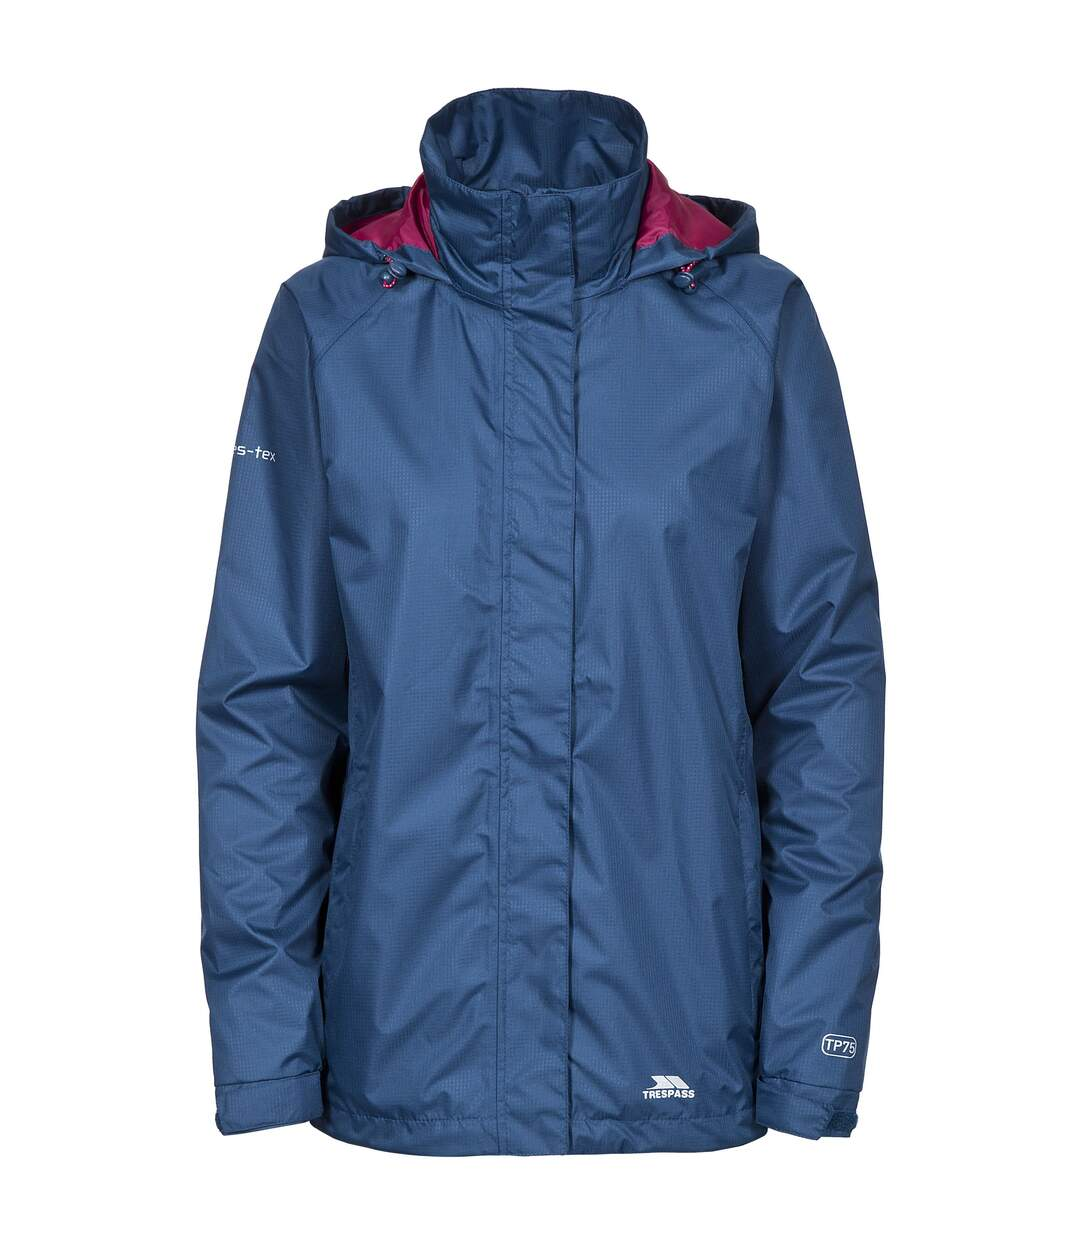 Trespass Womens/Ladies Lanna II Waterproof Jacket (Midnight Blue) - UTTP3279